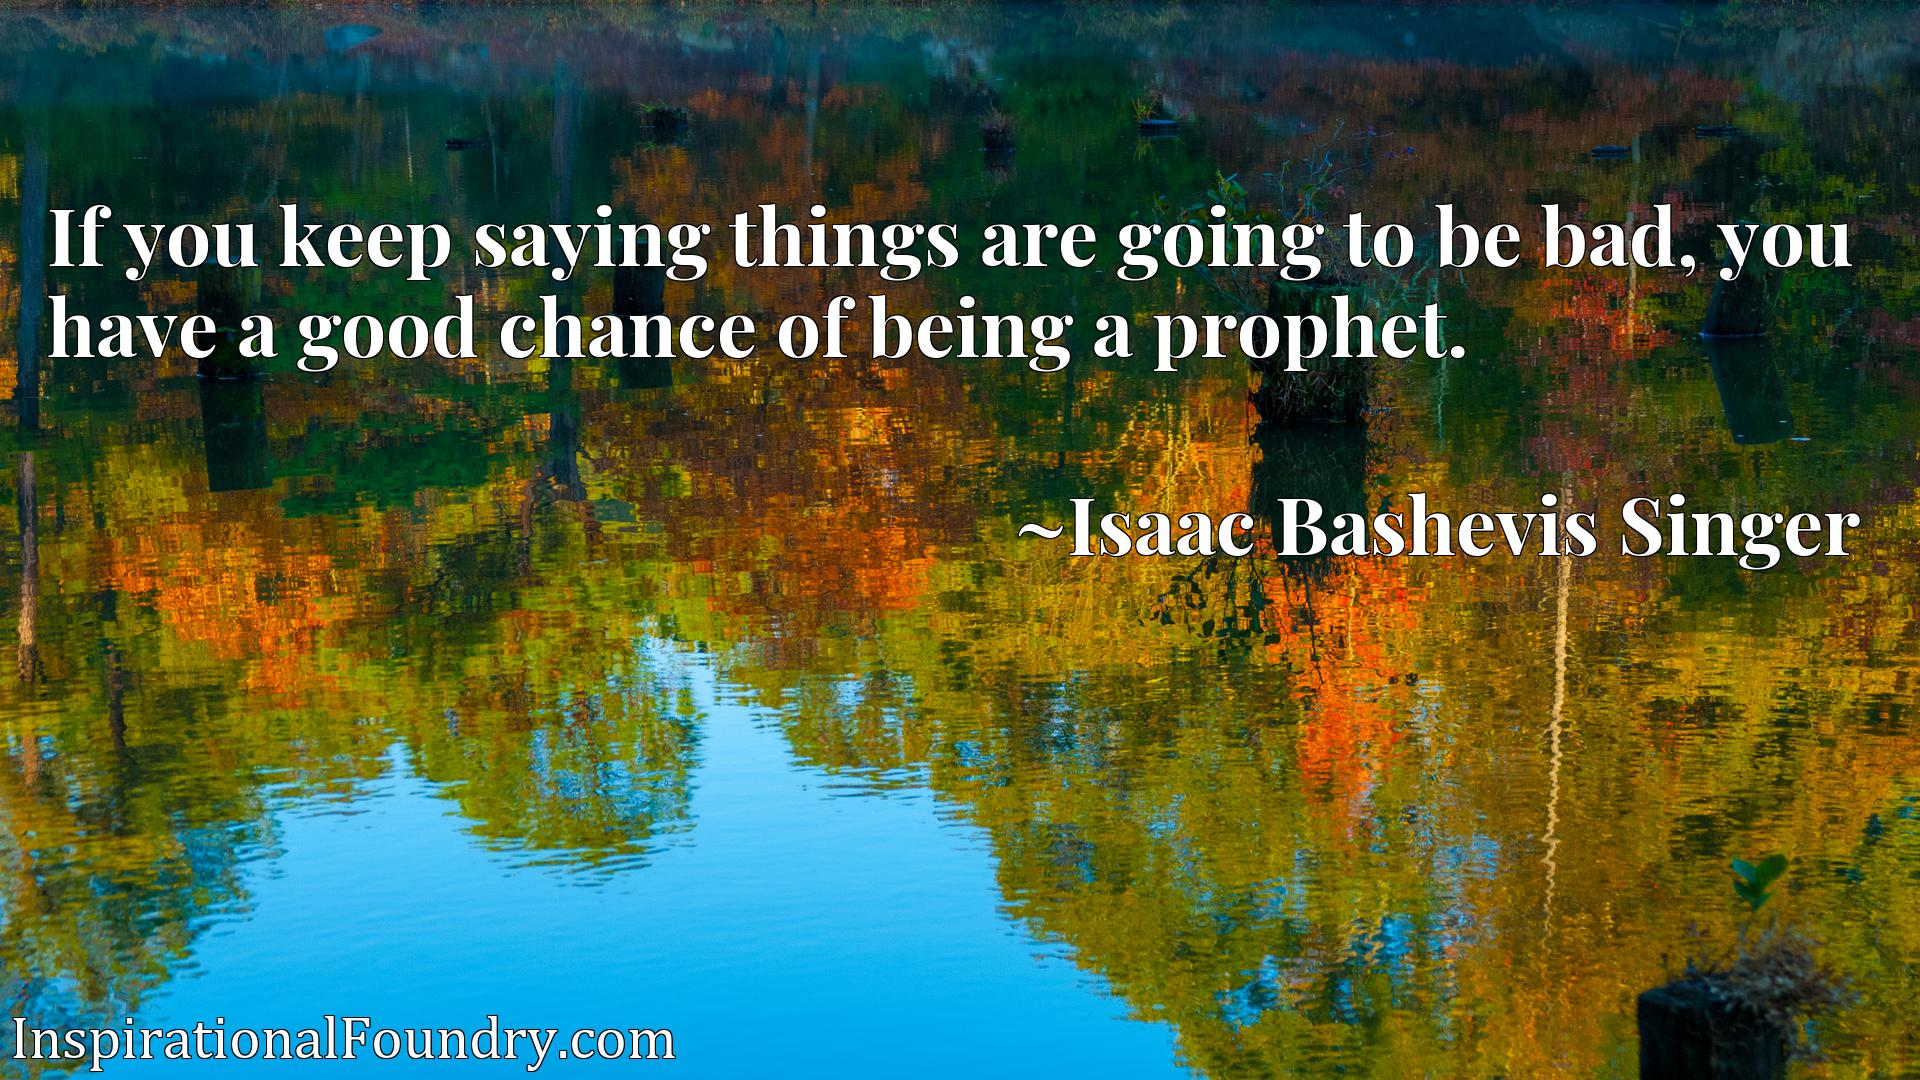 If you keep saying things are going to be bad, you have a good chance of being a prophet.